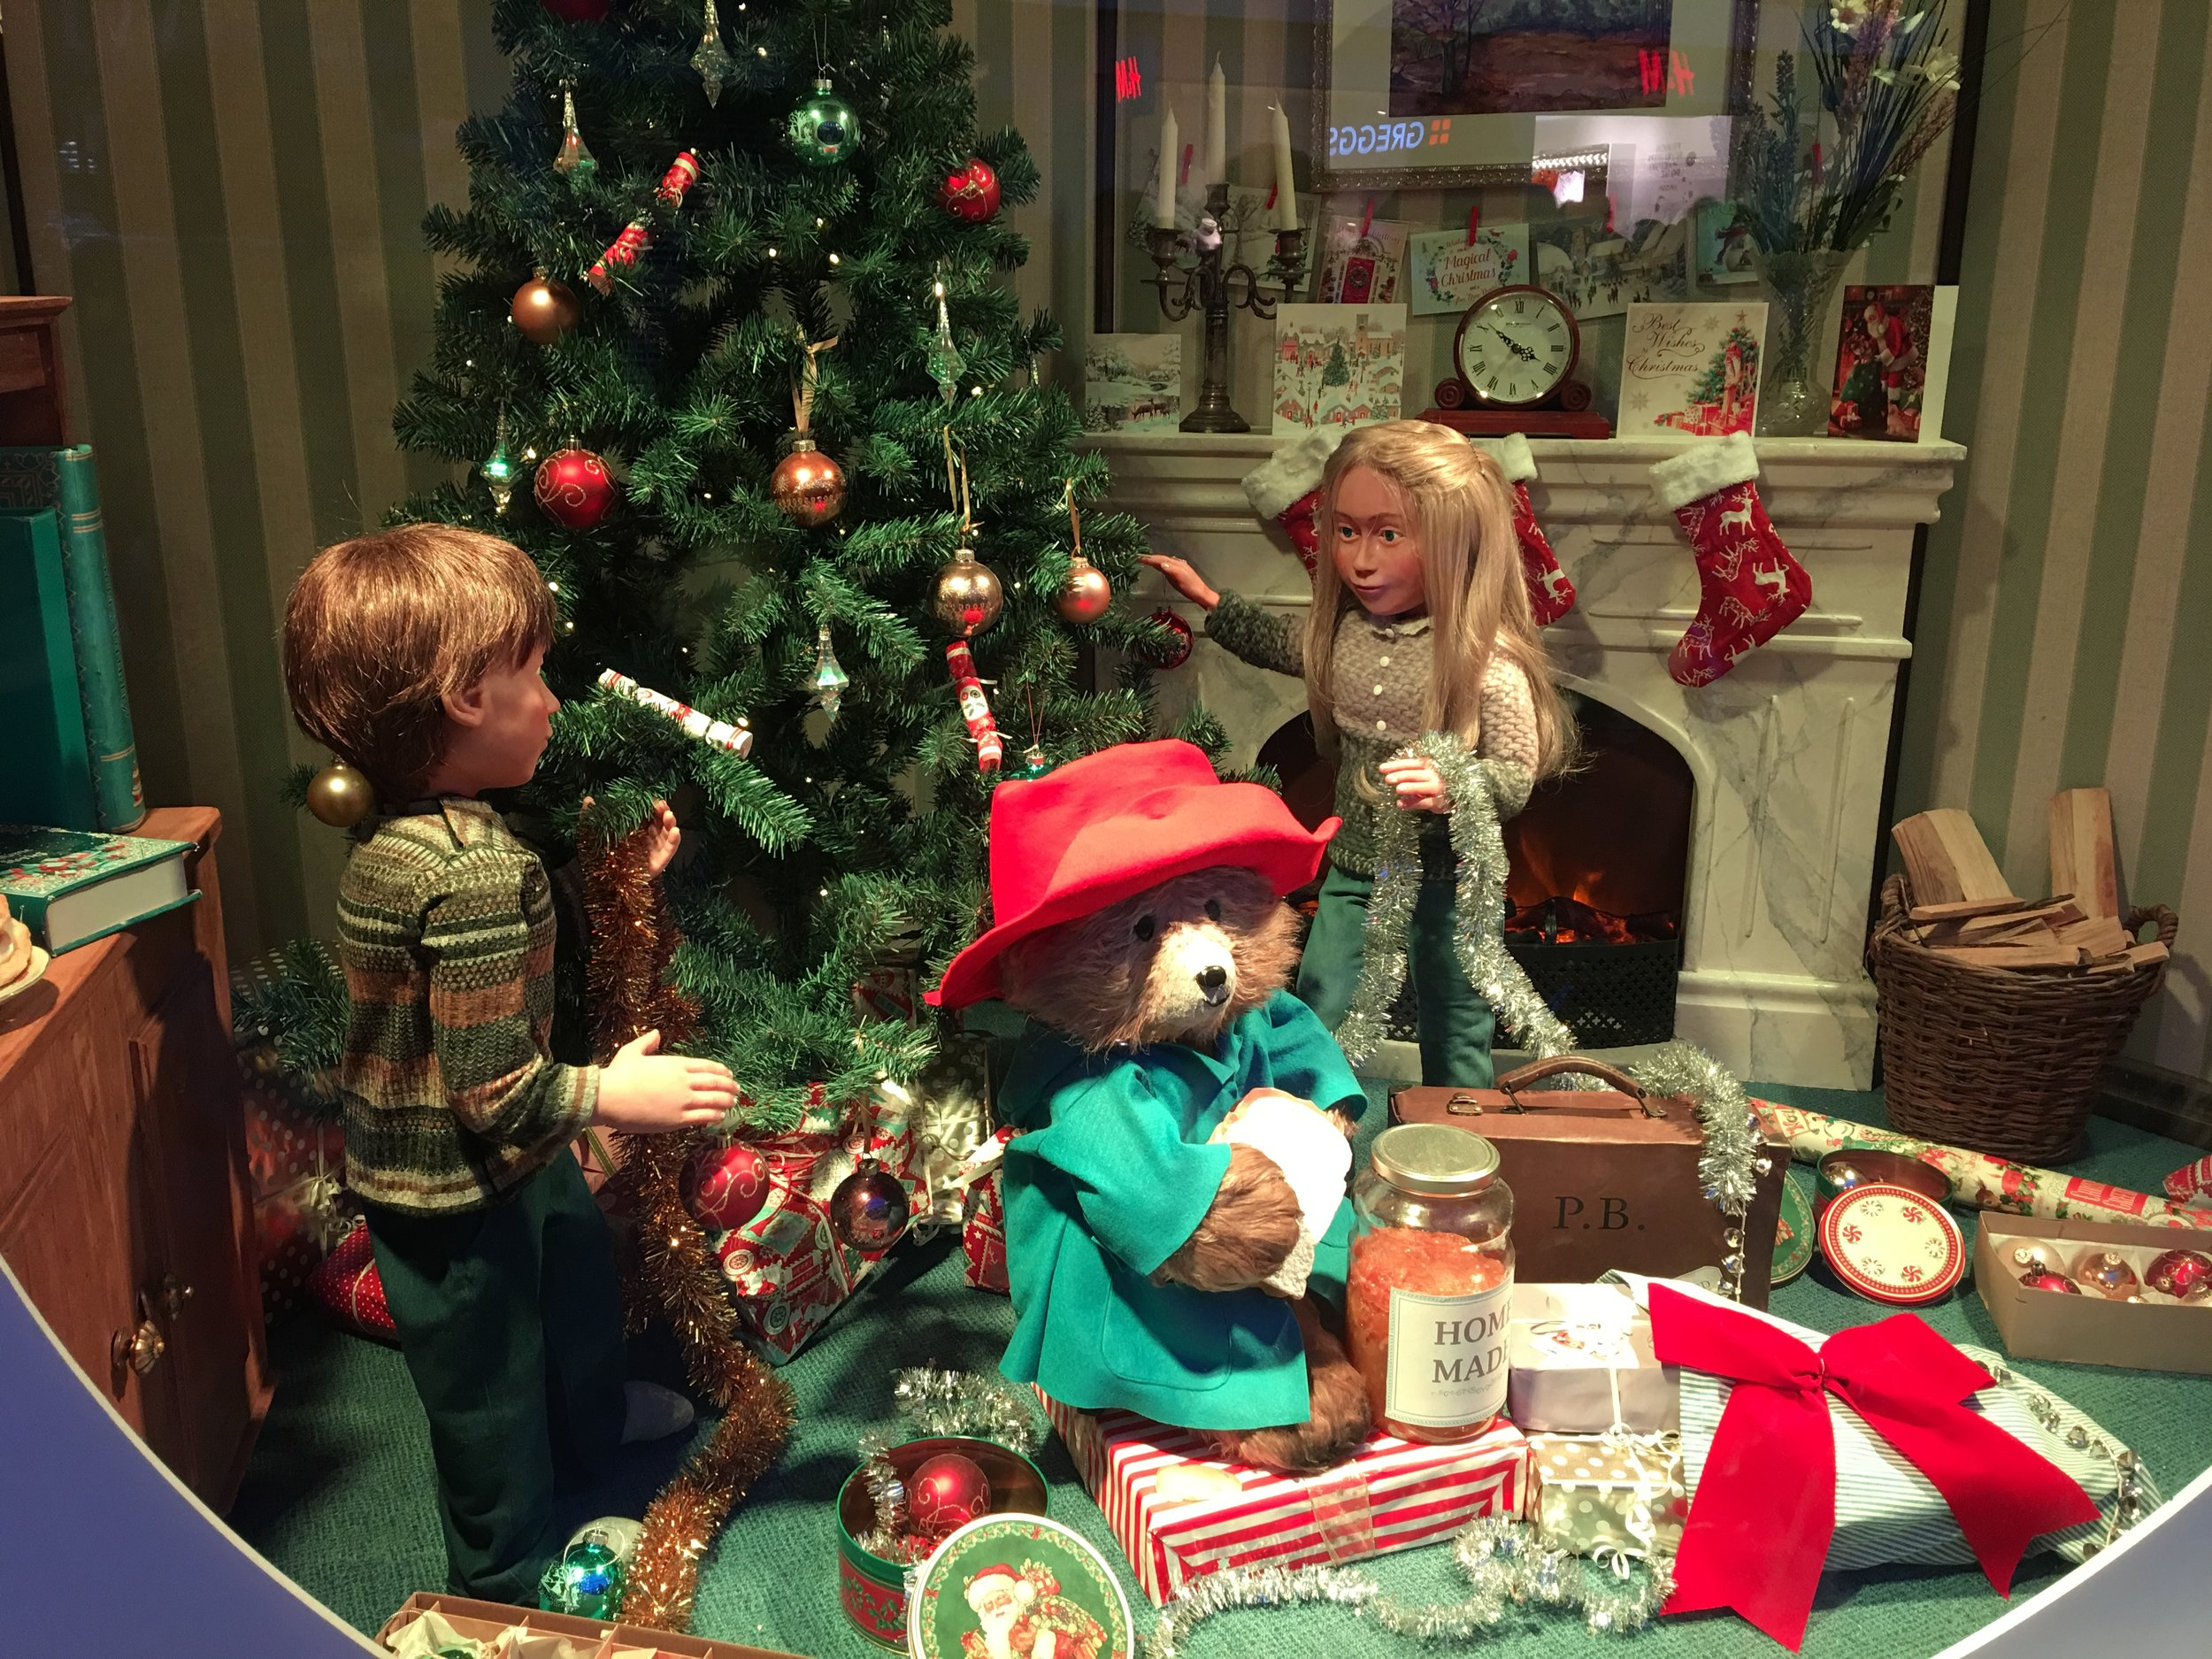 P.s. Paddington wishes all of you celebrating a merry Christmas -